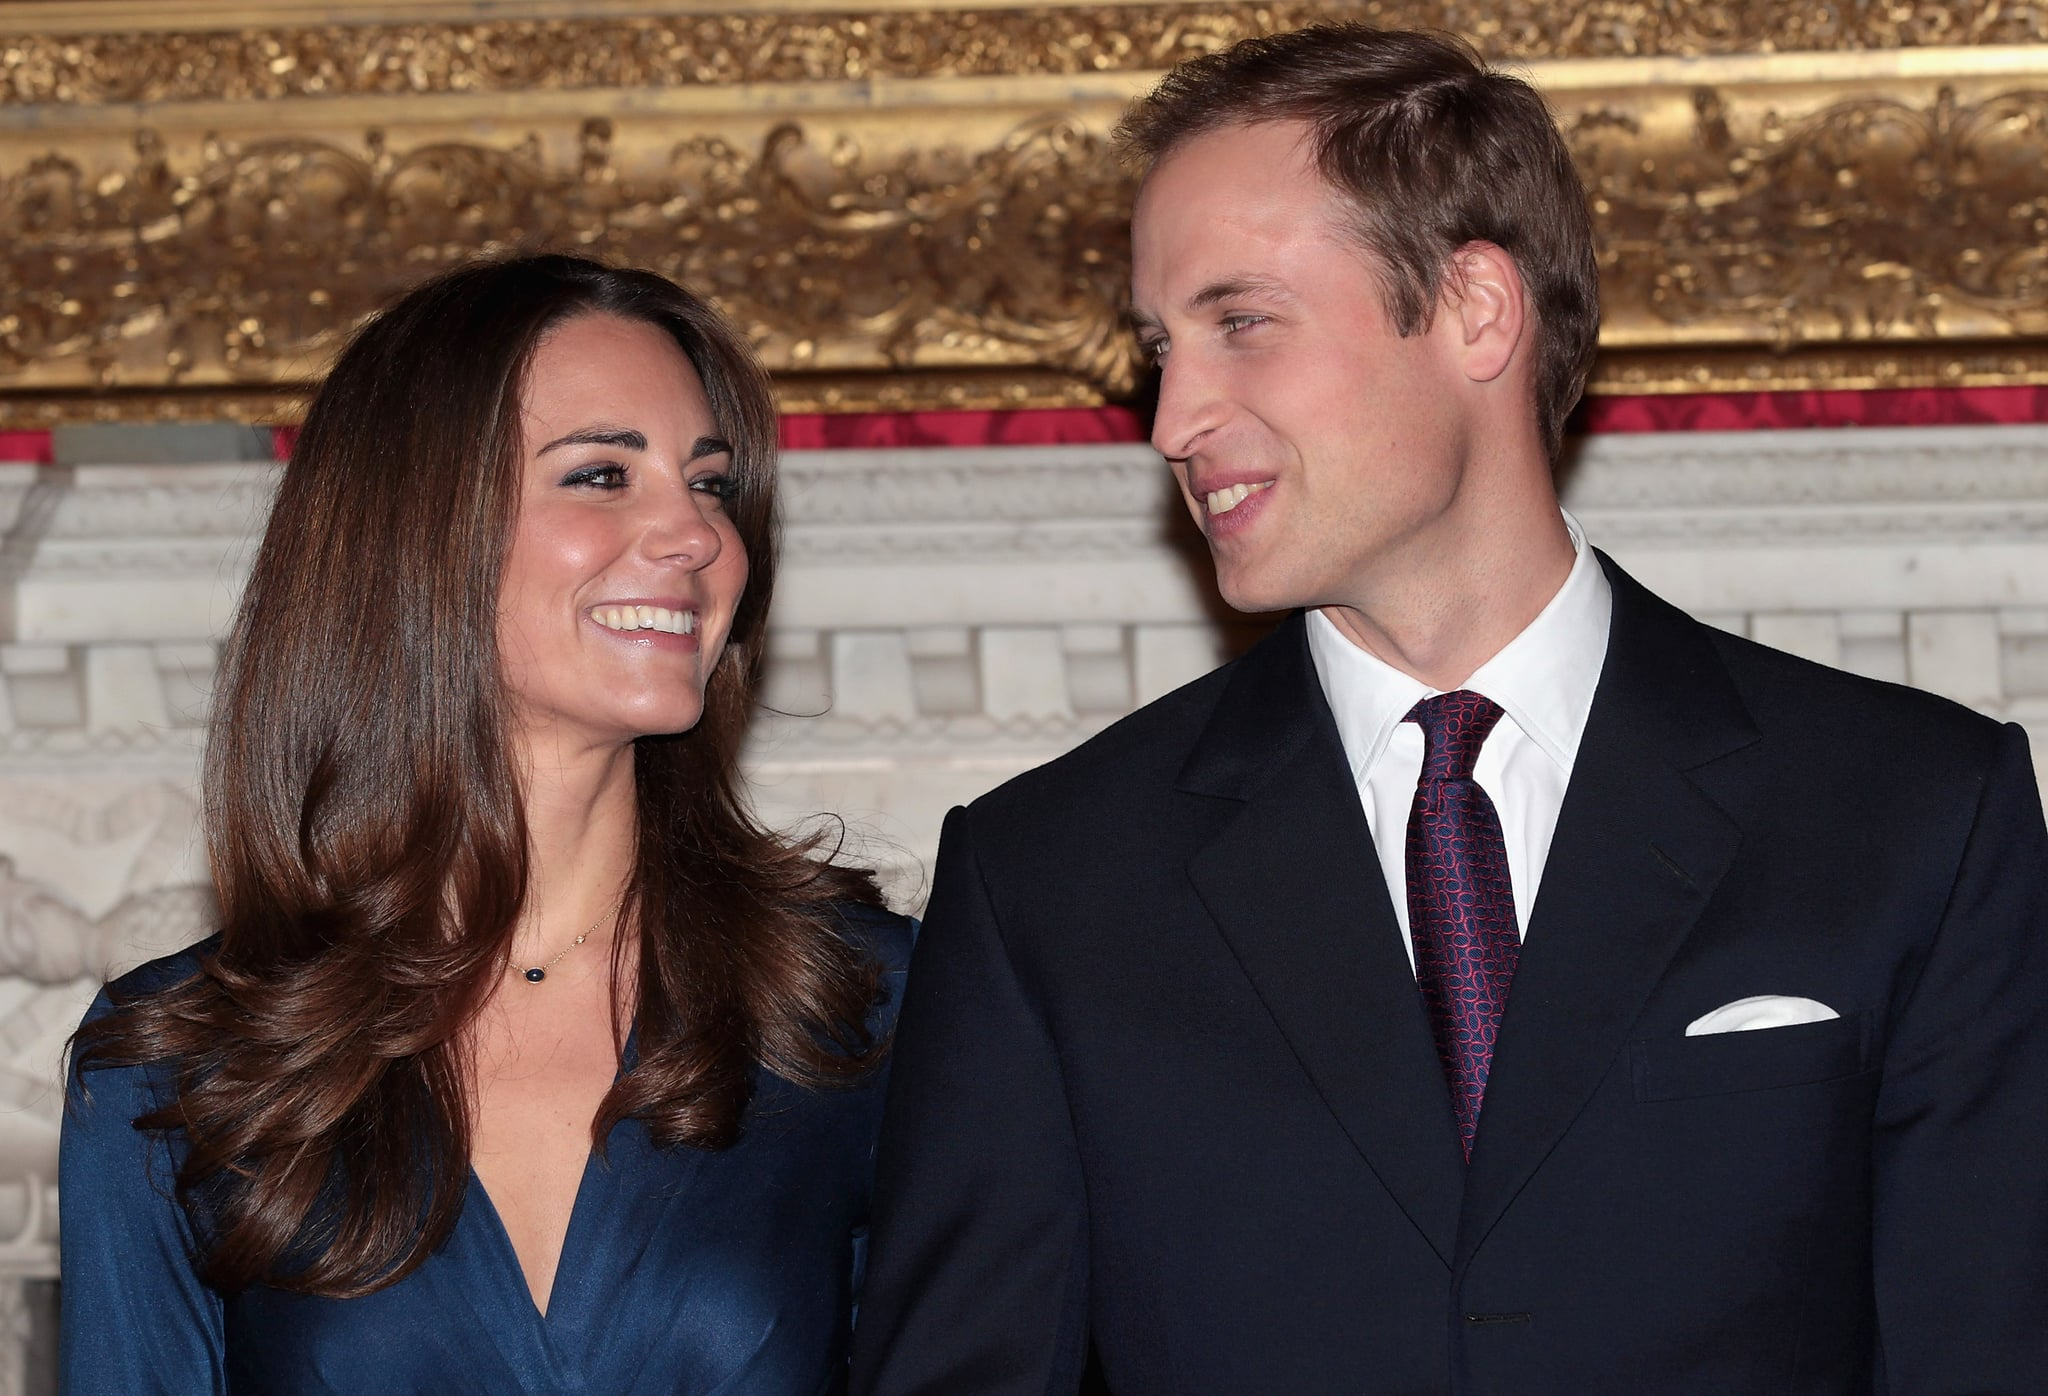 Prince William And Kate Middleton Announce Their. Marbled Rings. Gothic Cross Rings. Pine Wood Wedding Rings. Imperial Jade Wedding Rings. Elongated Rings. Pointer Rings. Copper Wedding Rings. Compassion Rings